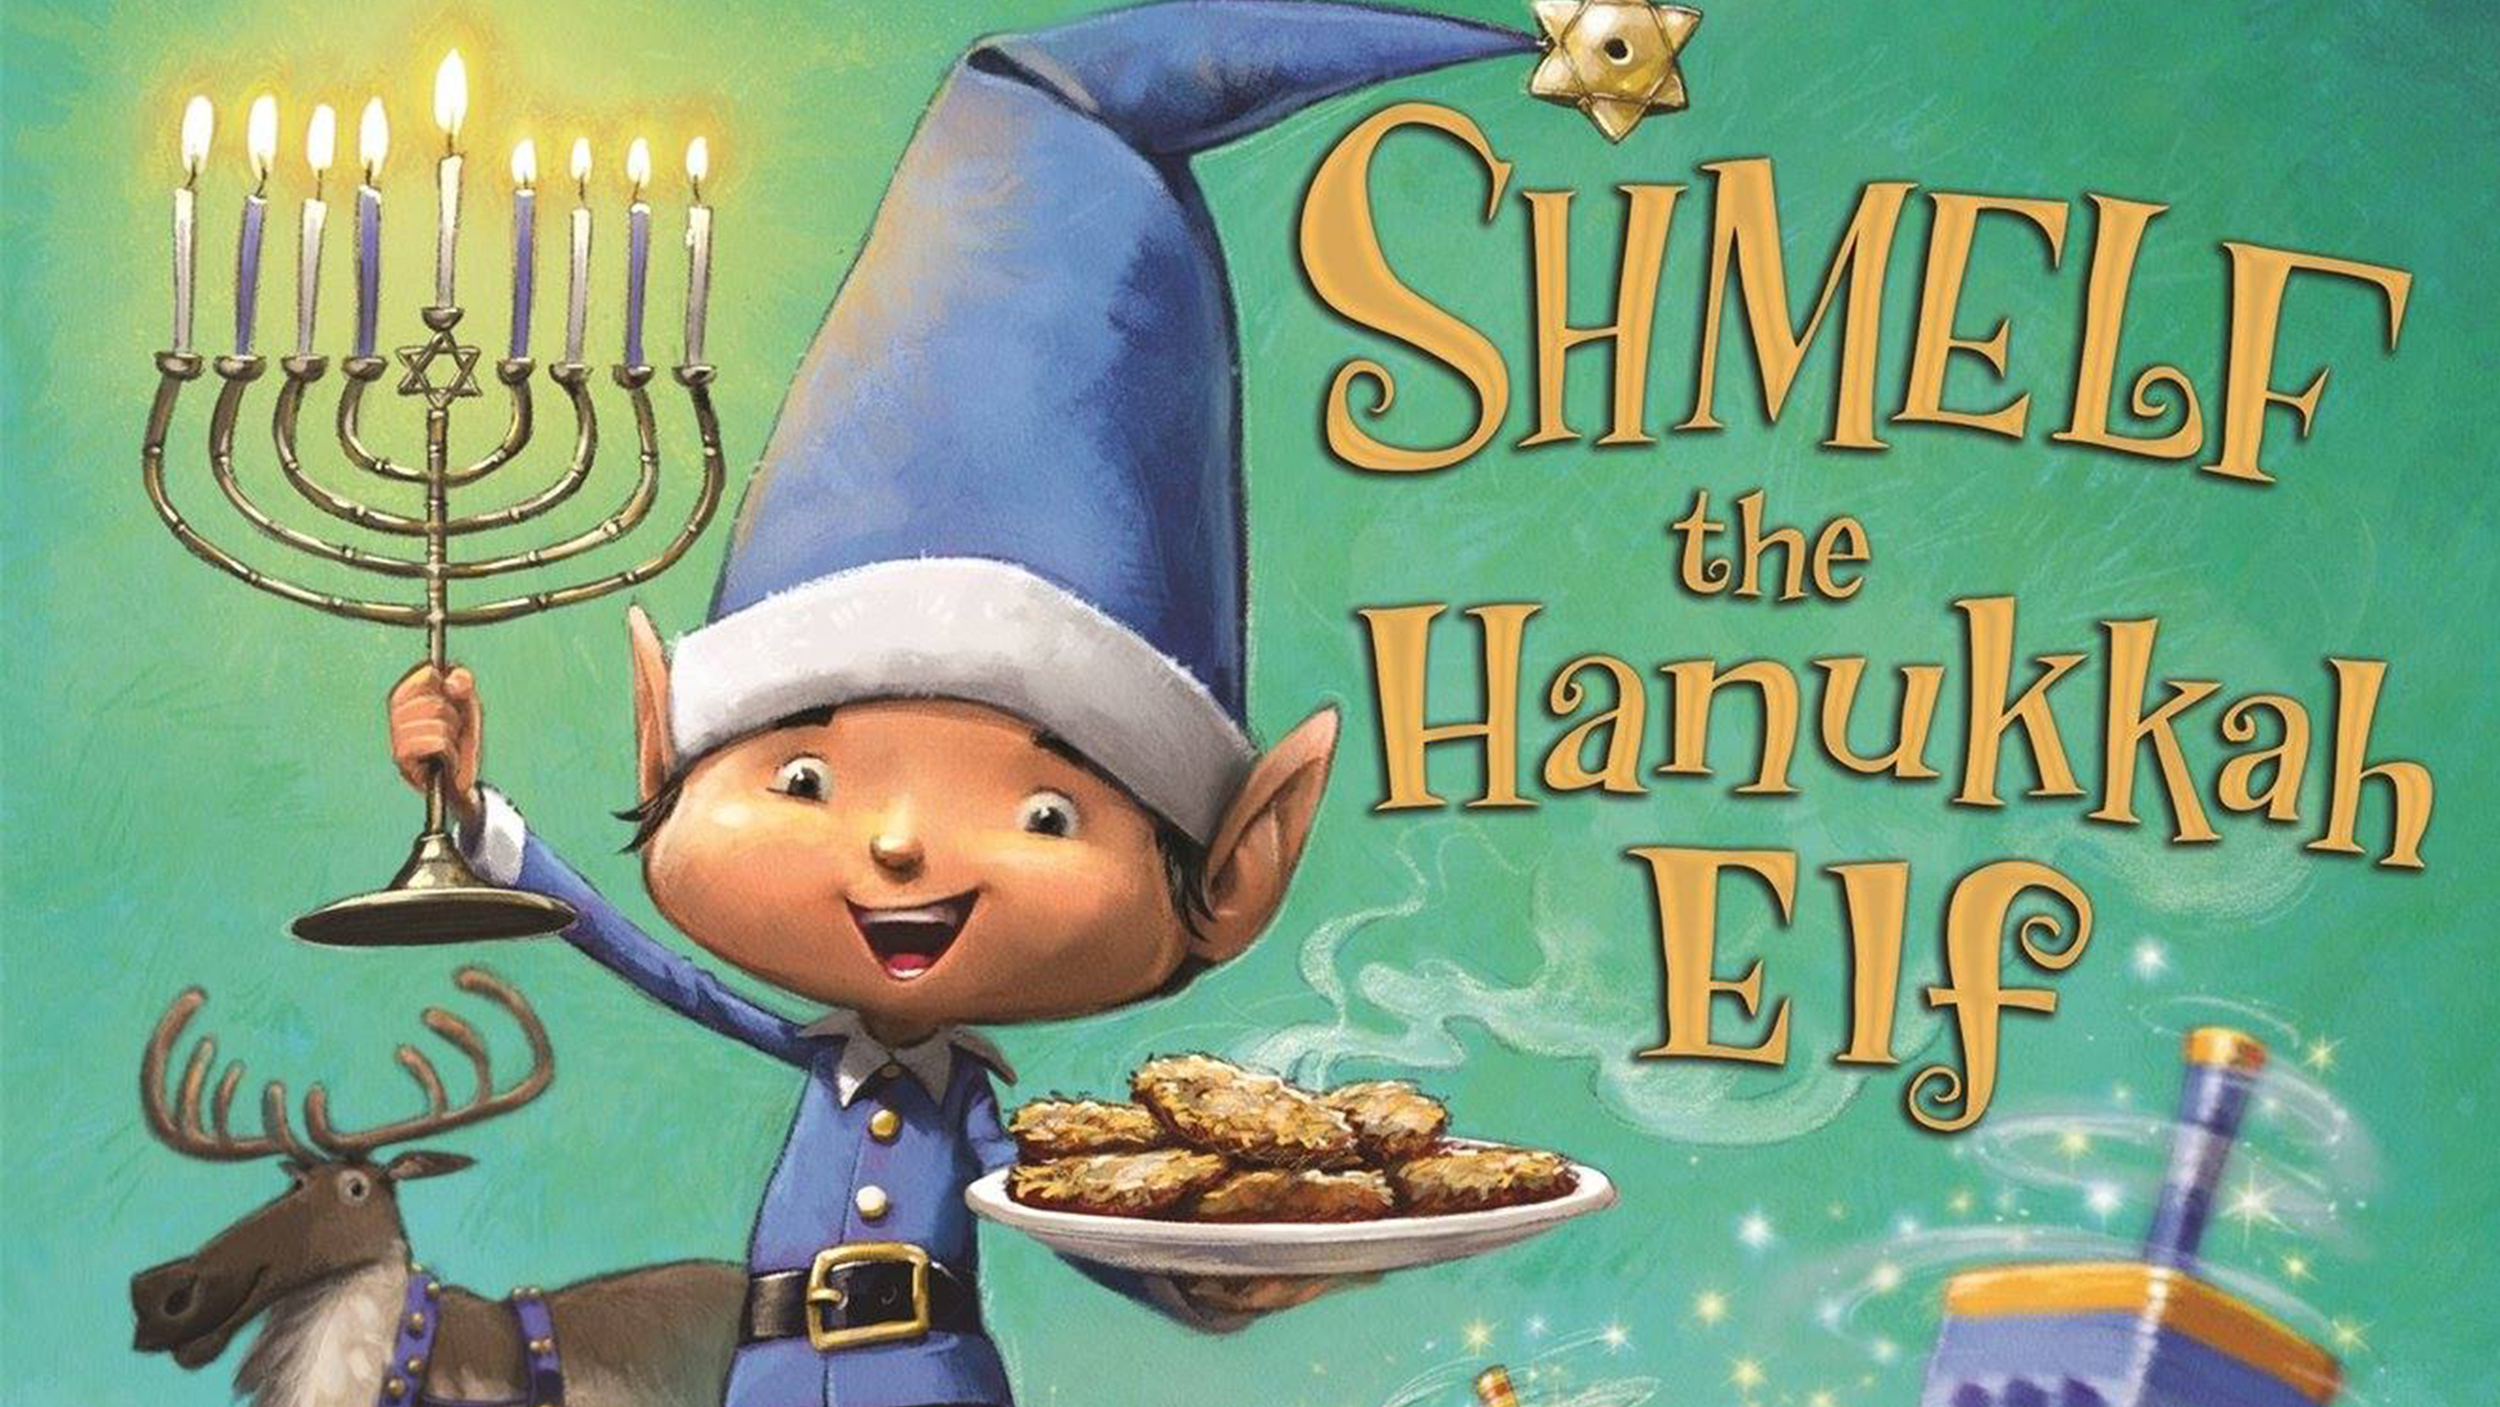 Shmelf Gives Jewish Kids A Holiday Elf Of Their Own